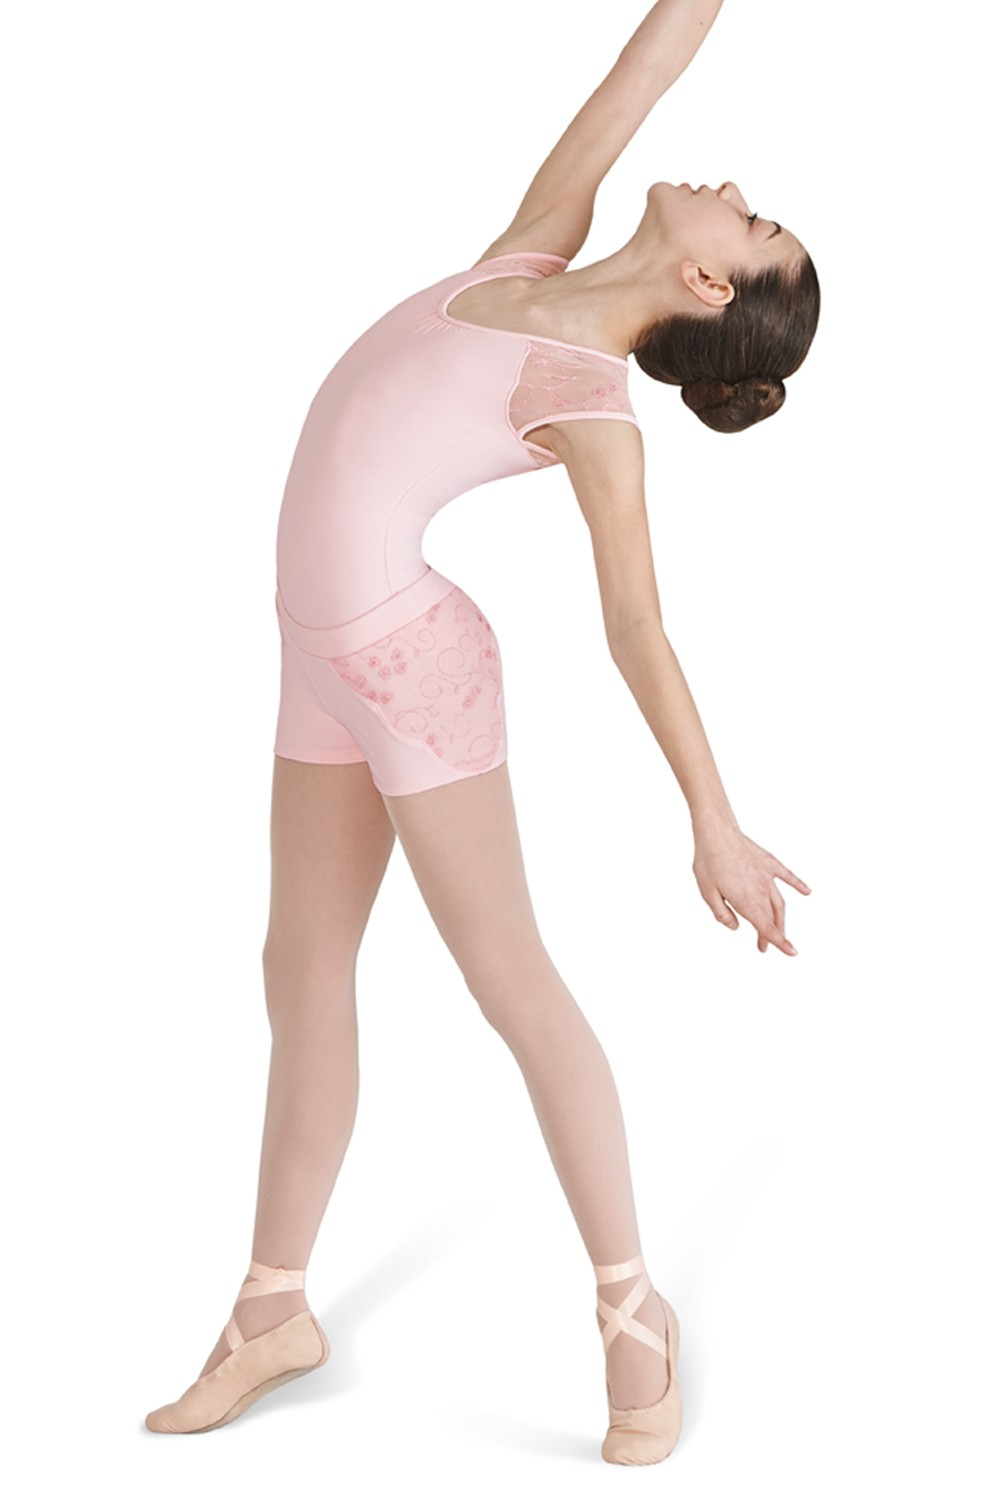 D'orient Leotard Children's Dance Leotards